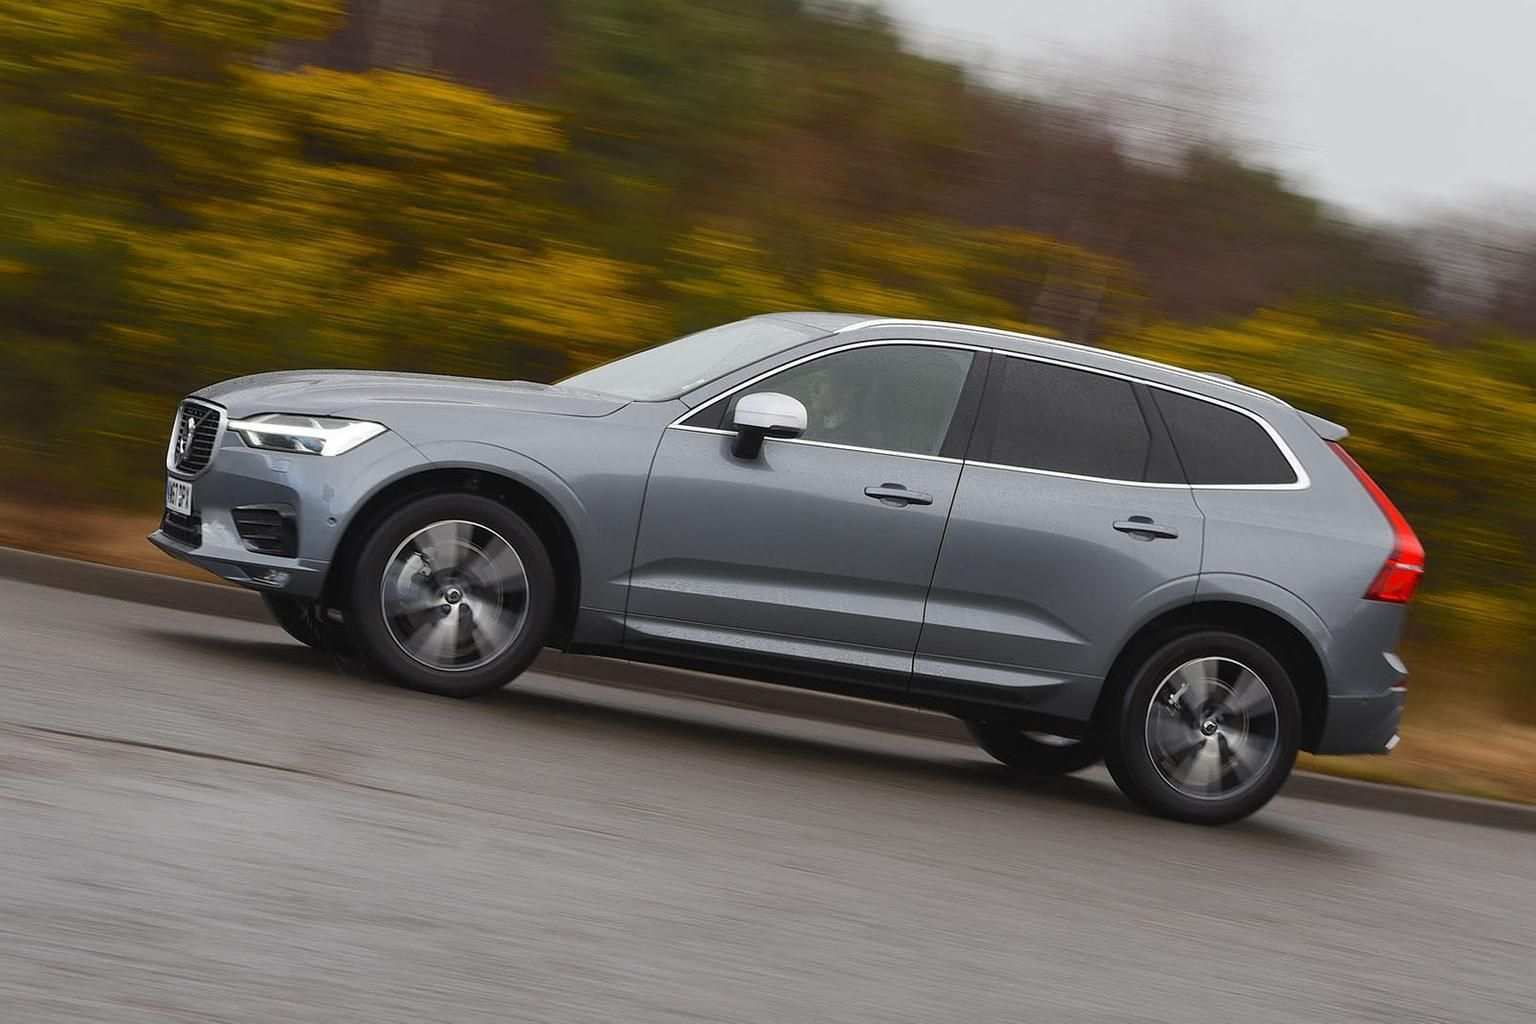 81 A Volvo Xc60 2019 Manual Specs And Review